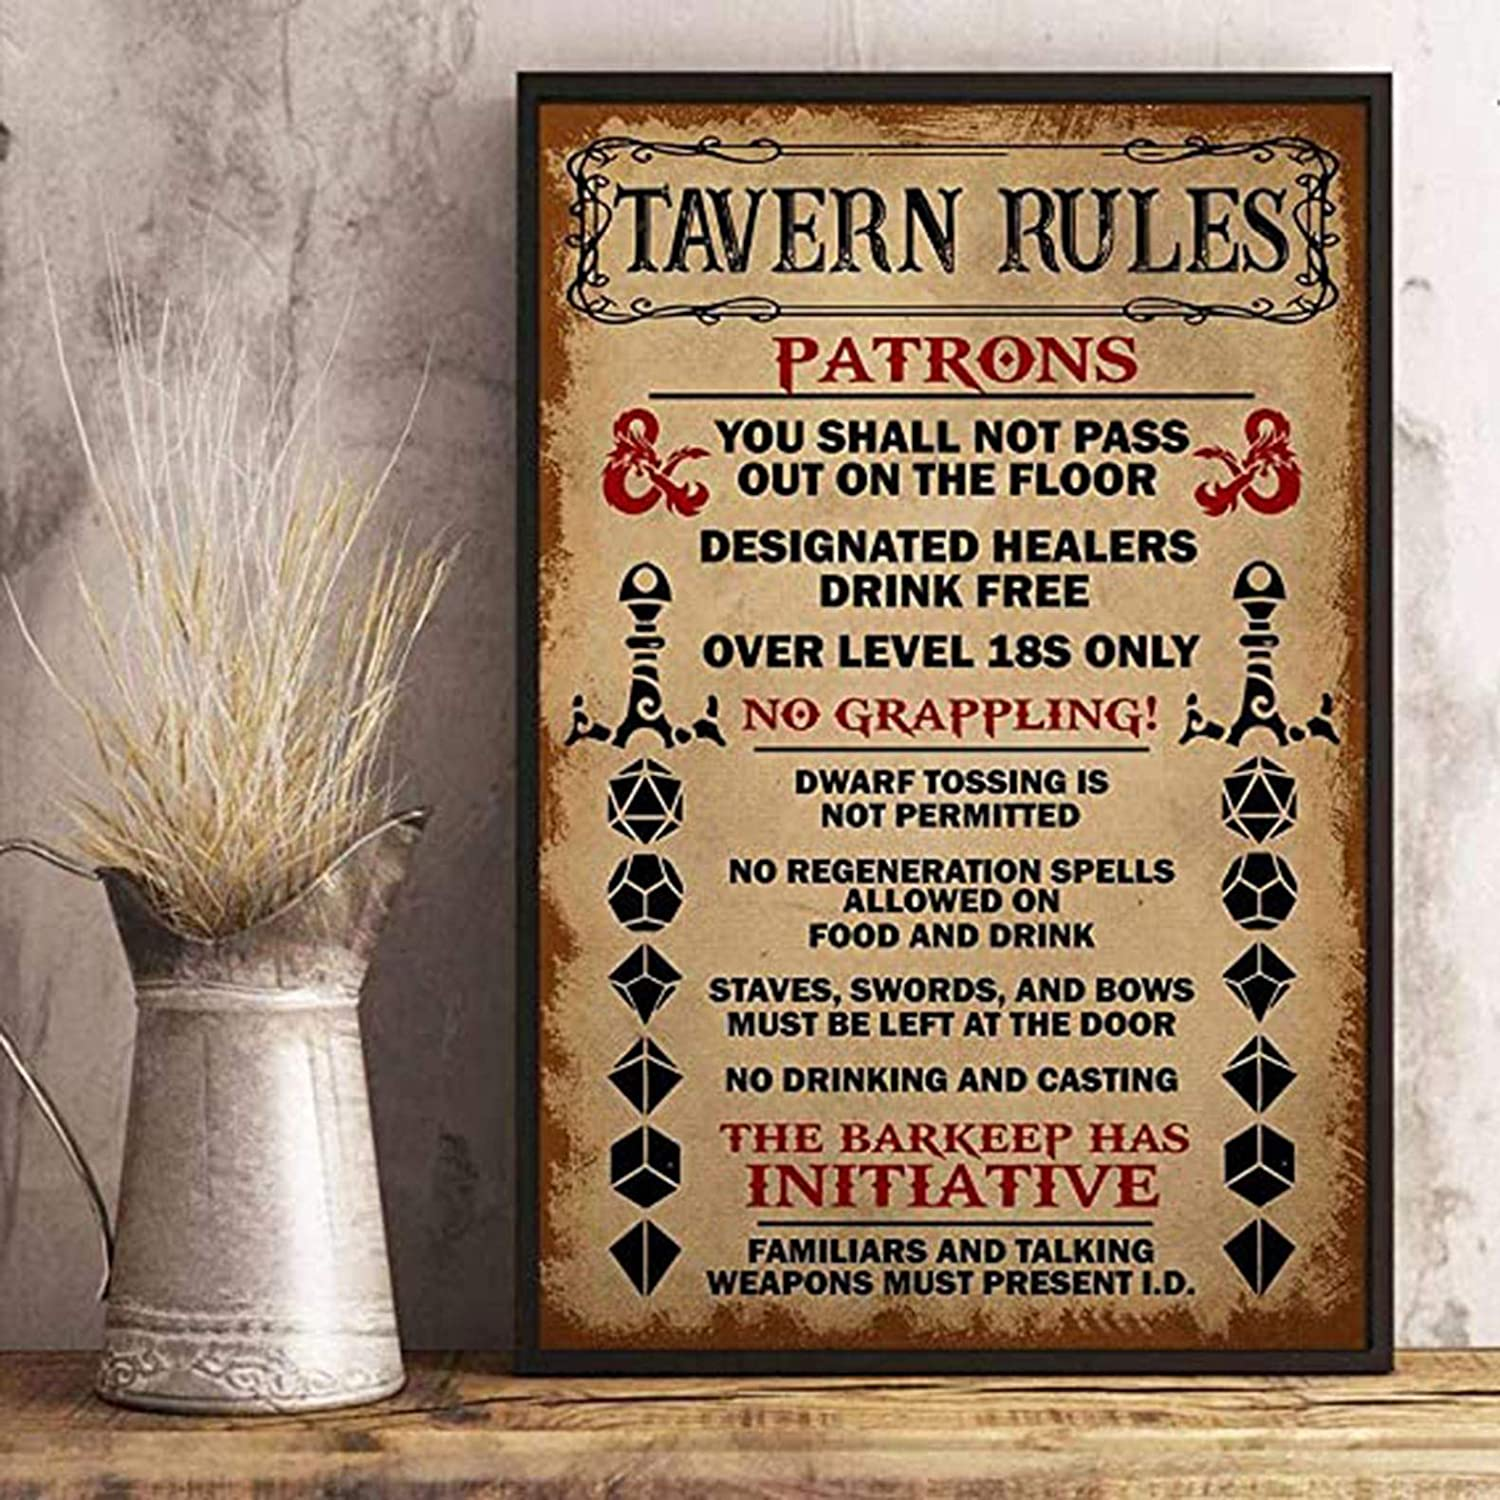 Amazon Com Tavern Rules Patrons Poster Dungeon Rpg Dnd Tabletop Dragons Dice Games Gaming Poster Living Home Decor Poster 11x17 Posters Prints